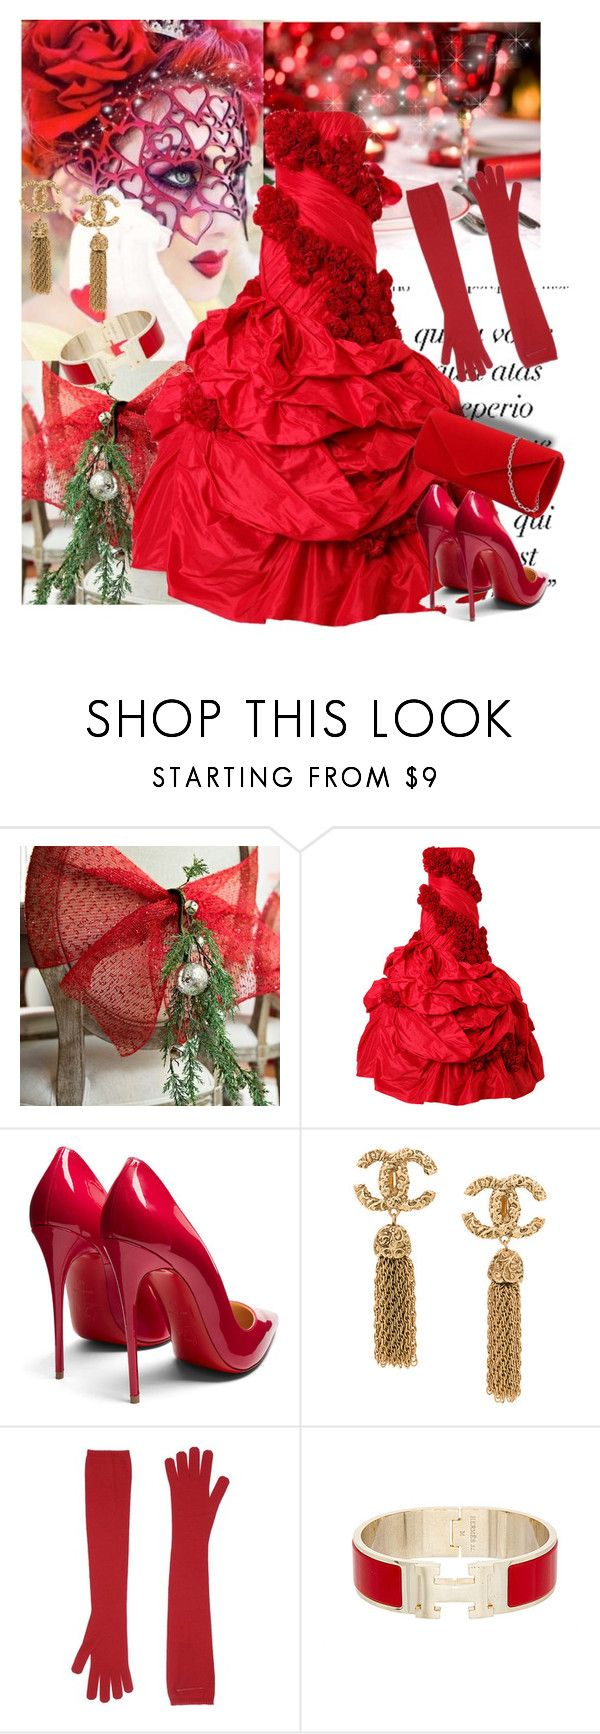 """Christmas Masquerade Party"" by sherrysrosecottage-1 ❤ liked on Polyvore featuring Masquerade, Rubin Singer, Christian Louboutin, MM6 Maison Margiela and Hermès"